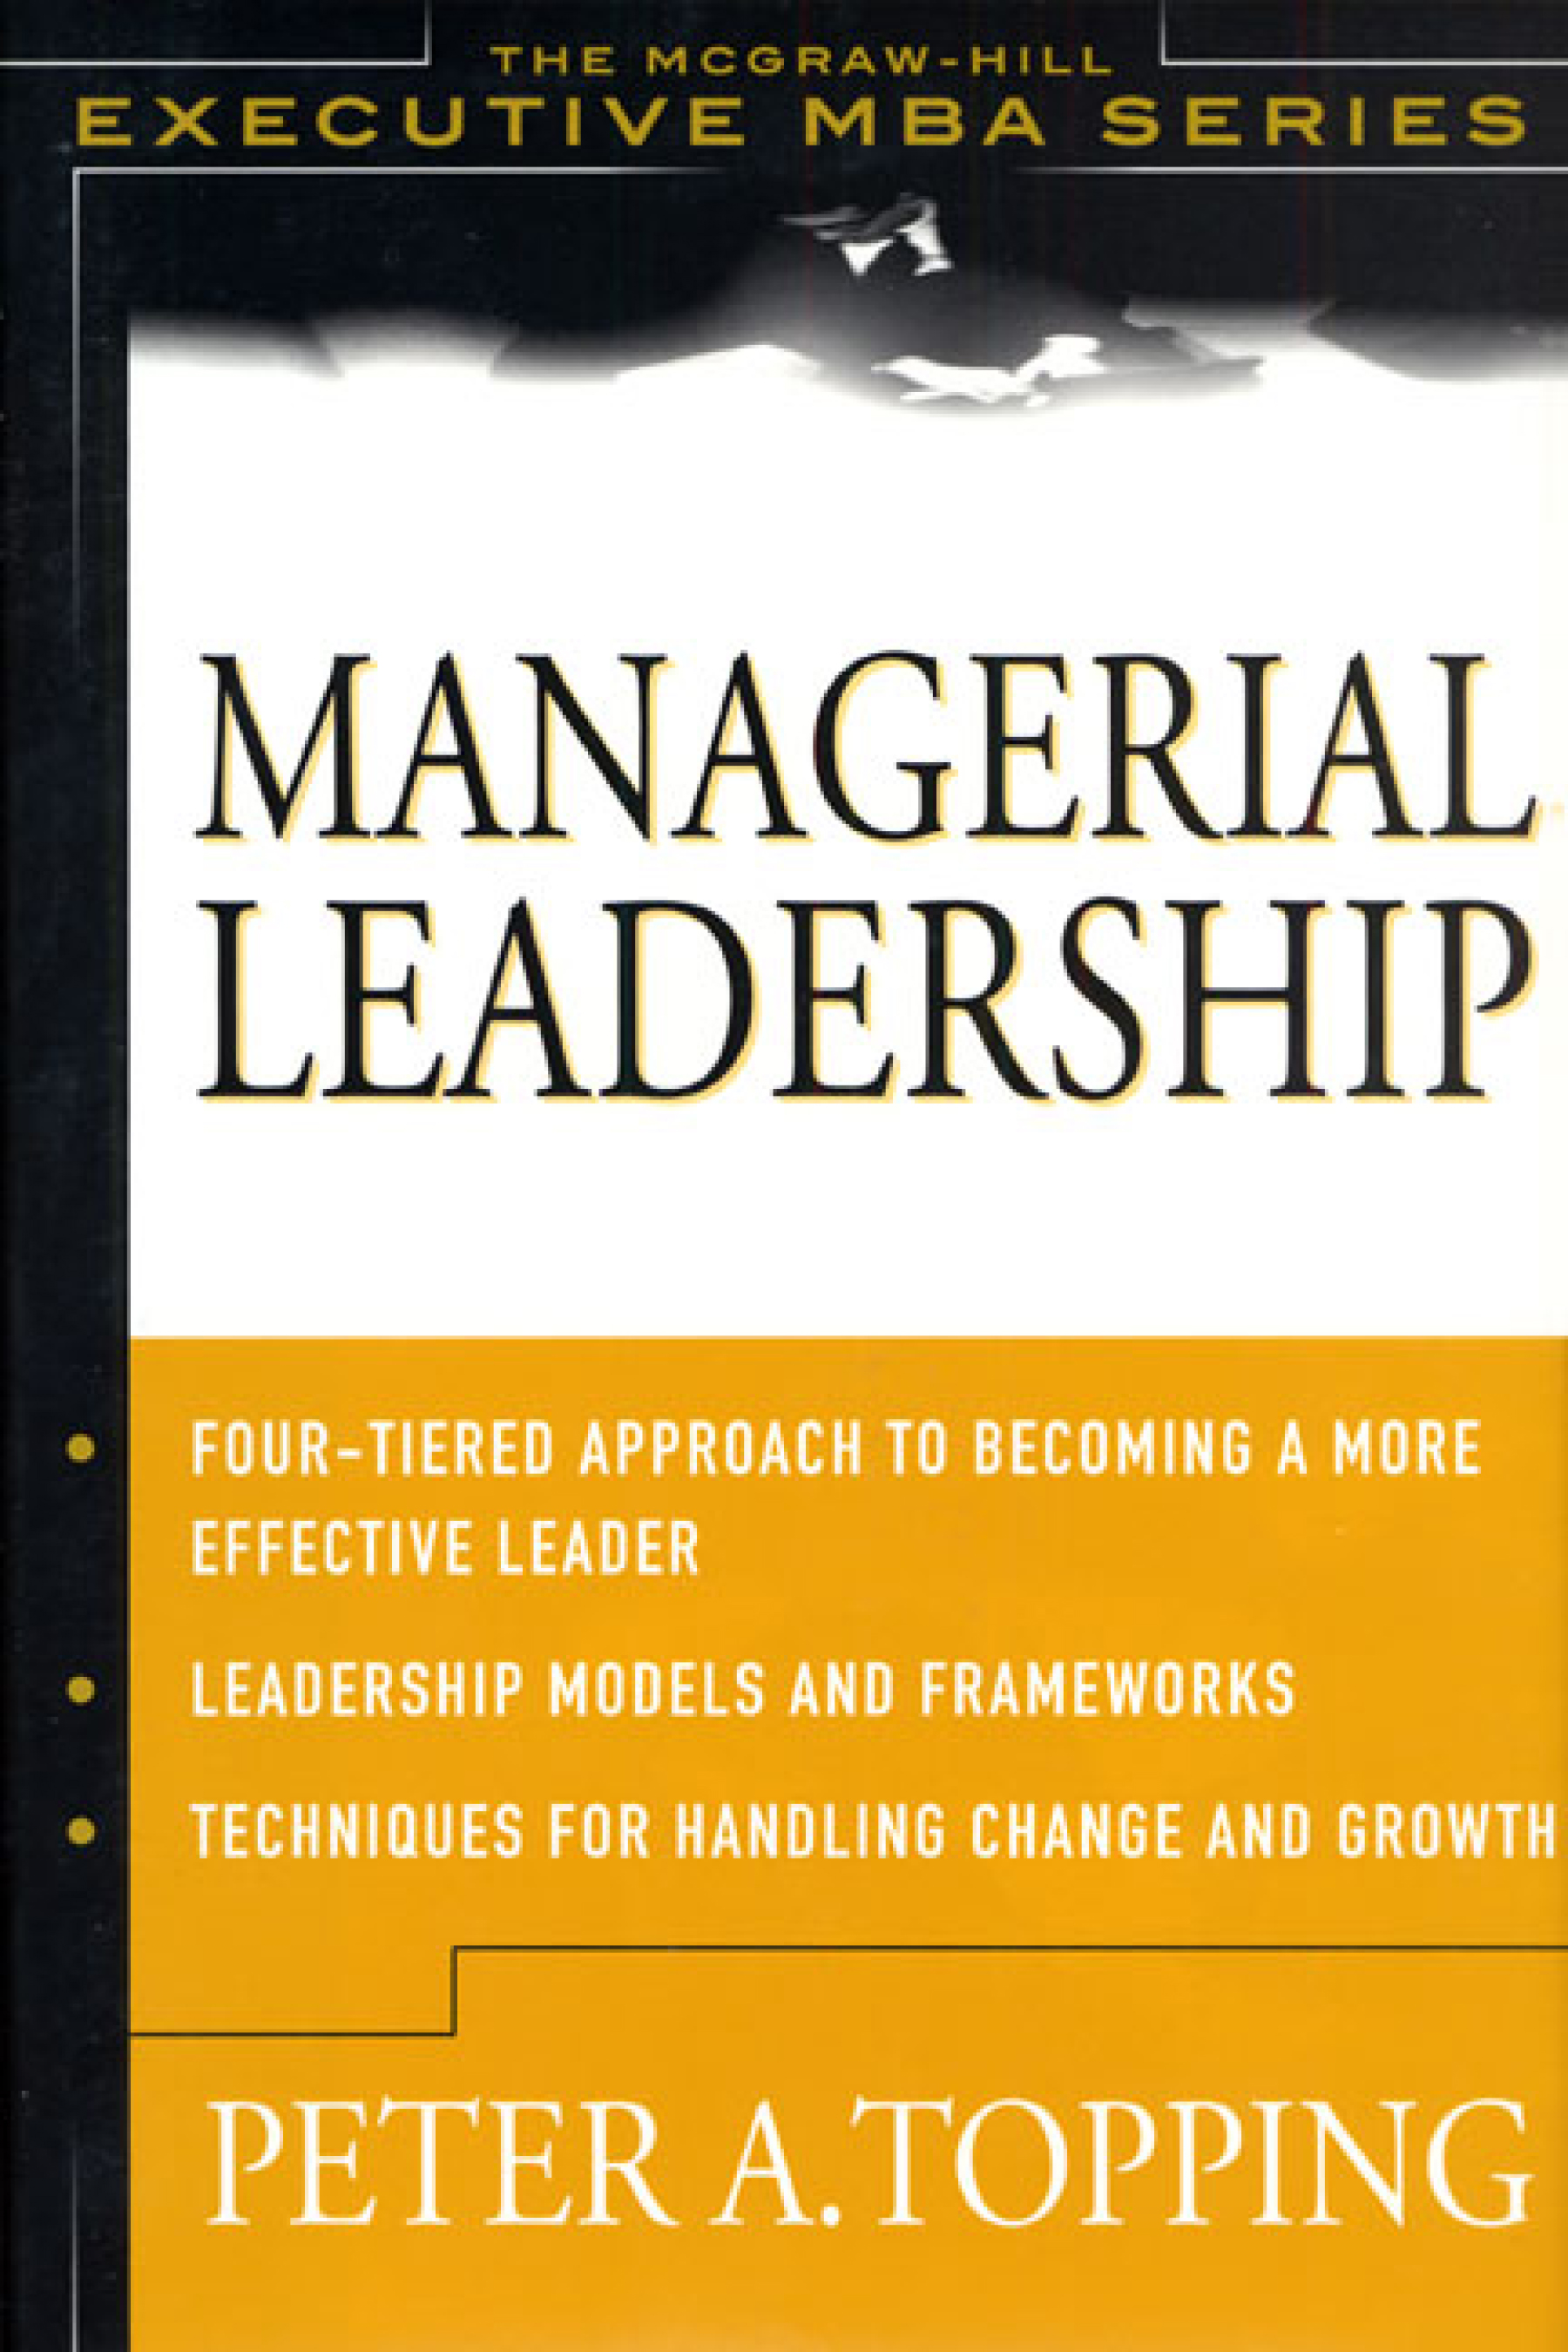 Download Ebook Managerial Leadership by Peter Topping Pdf